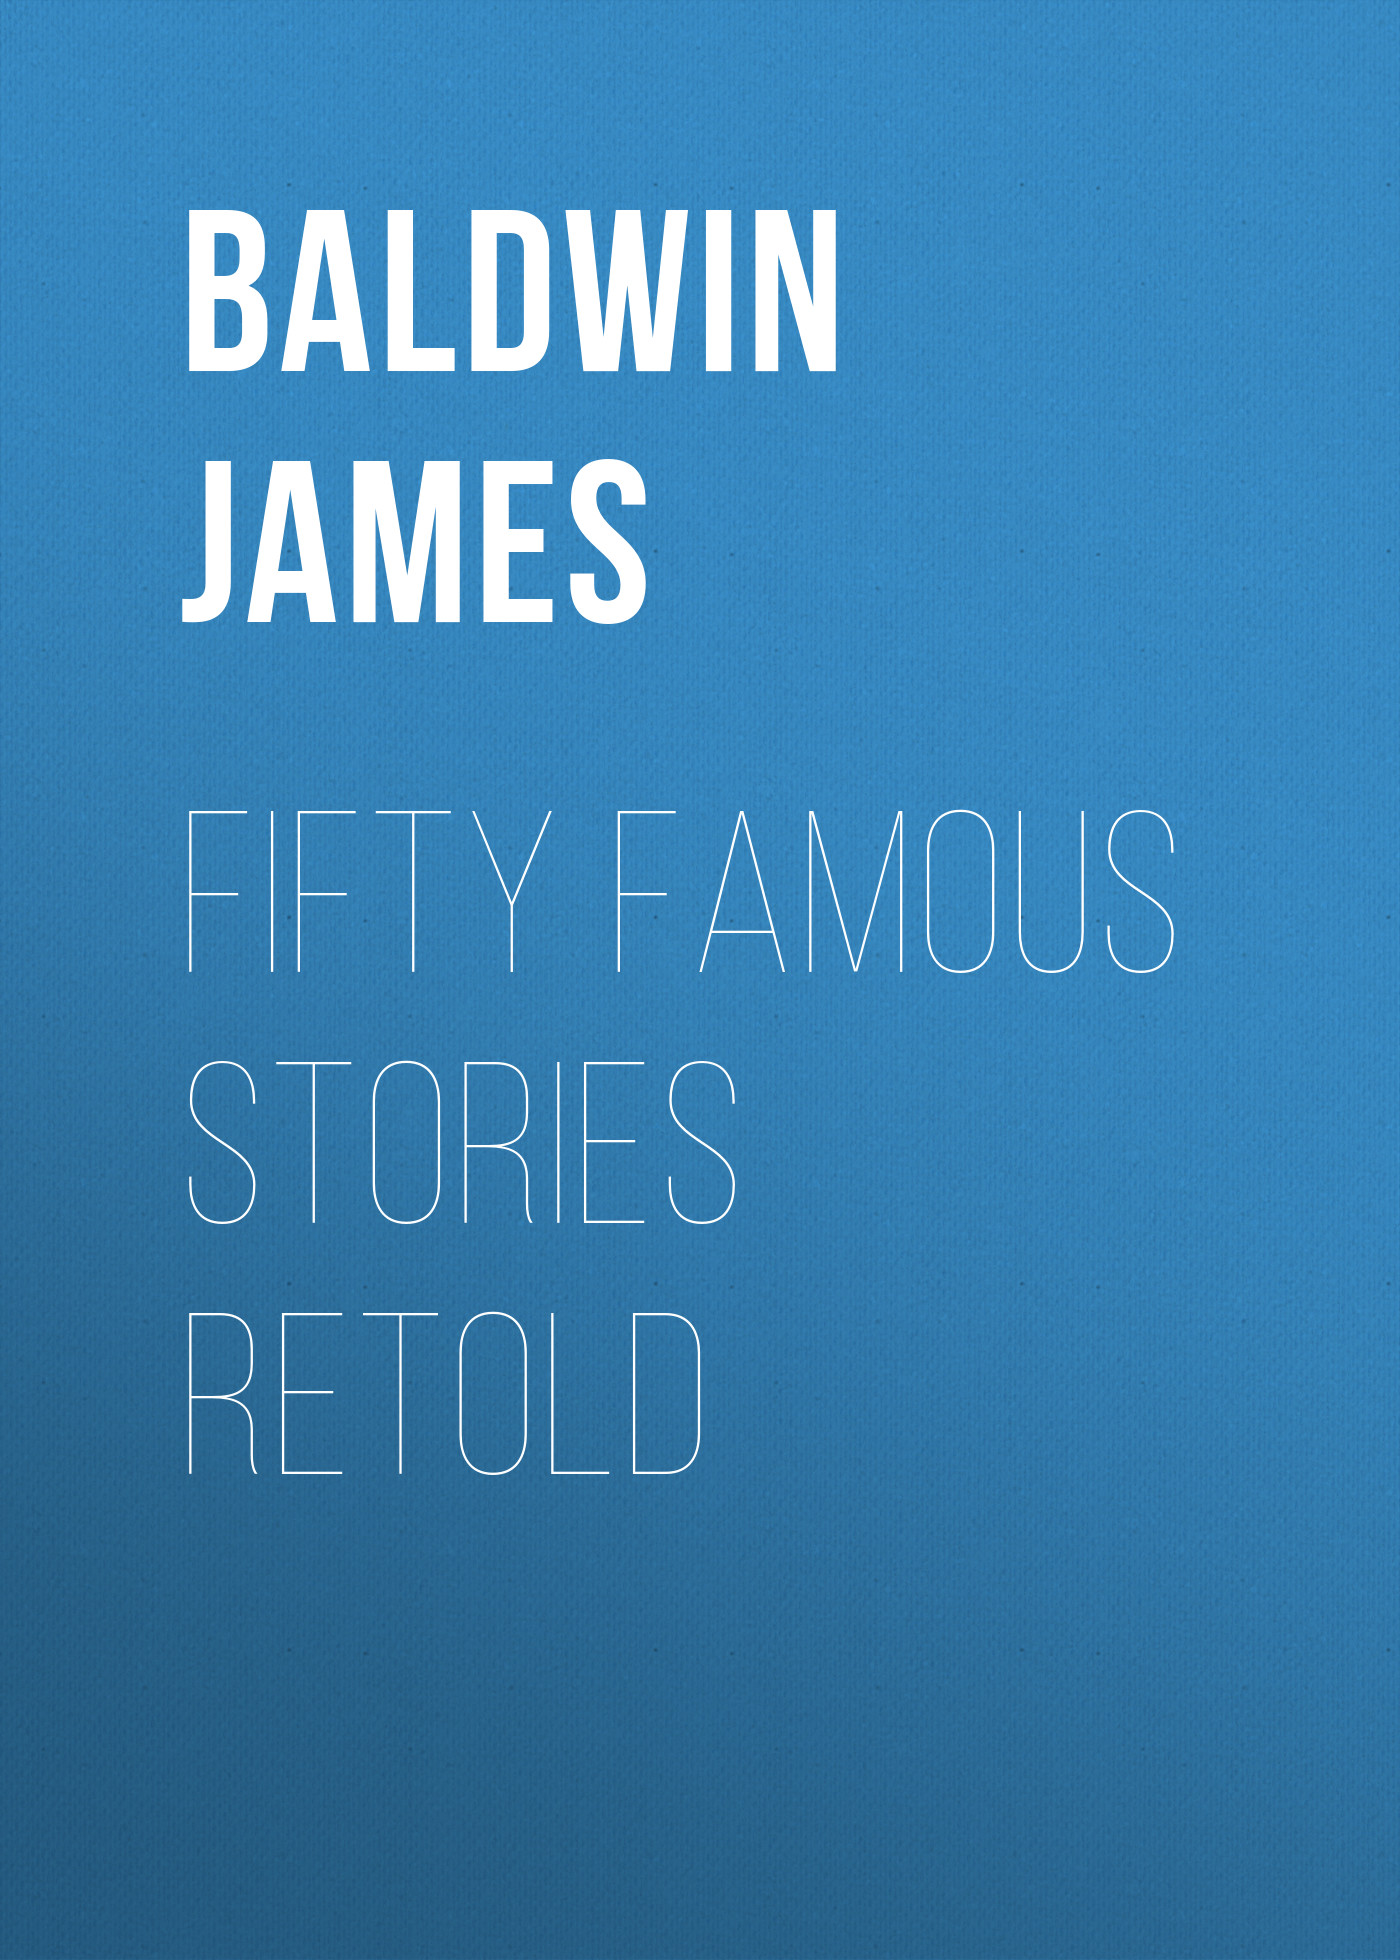 Baldwin James Fifty Famous Stories Retold baldwin james school reading by grades fifth year